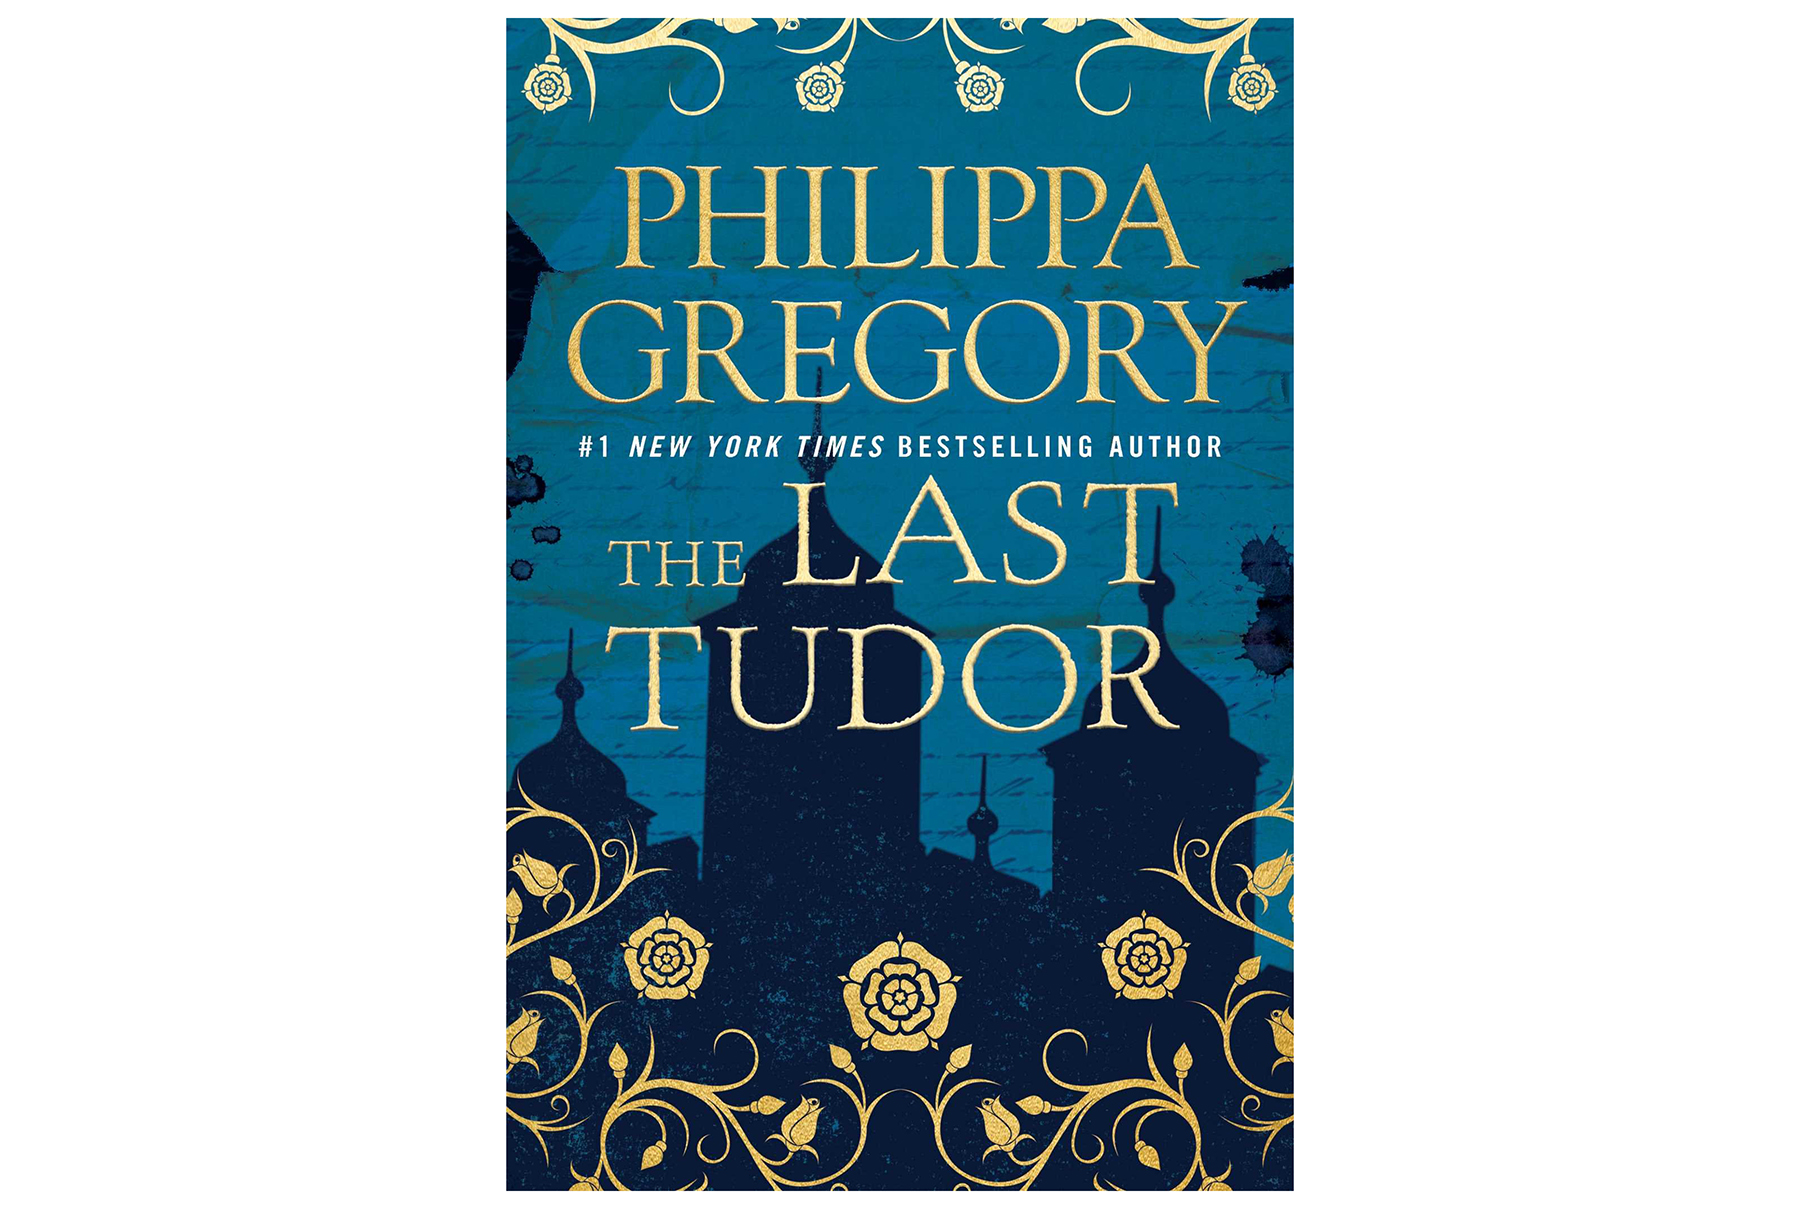 The Last Tudor, by Philippa Gregory